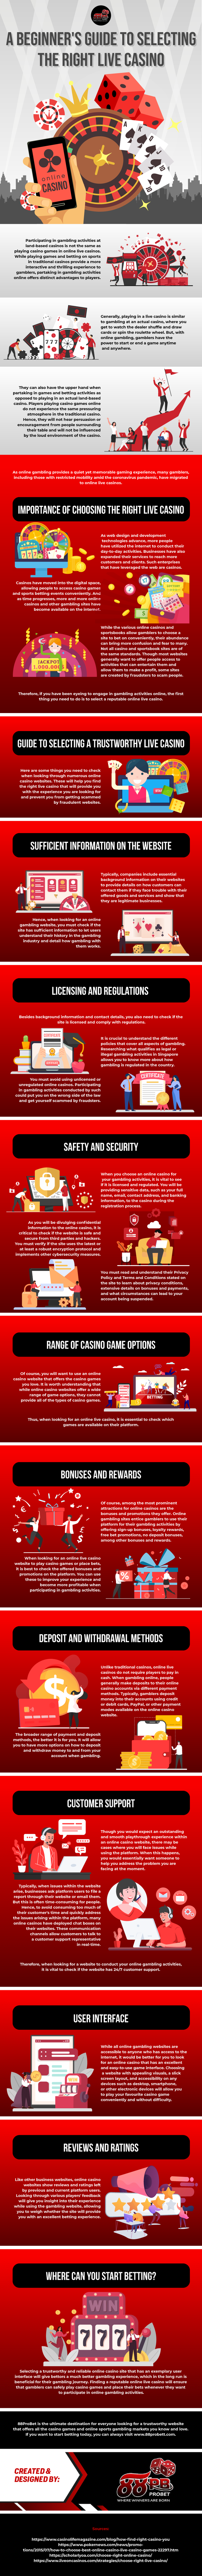 beginners-guide-selecting-right-online-casino